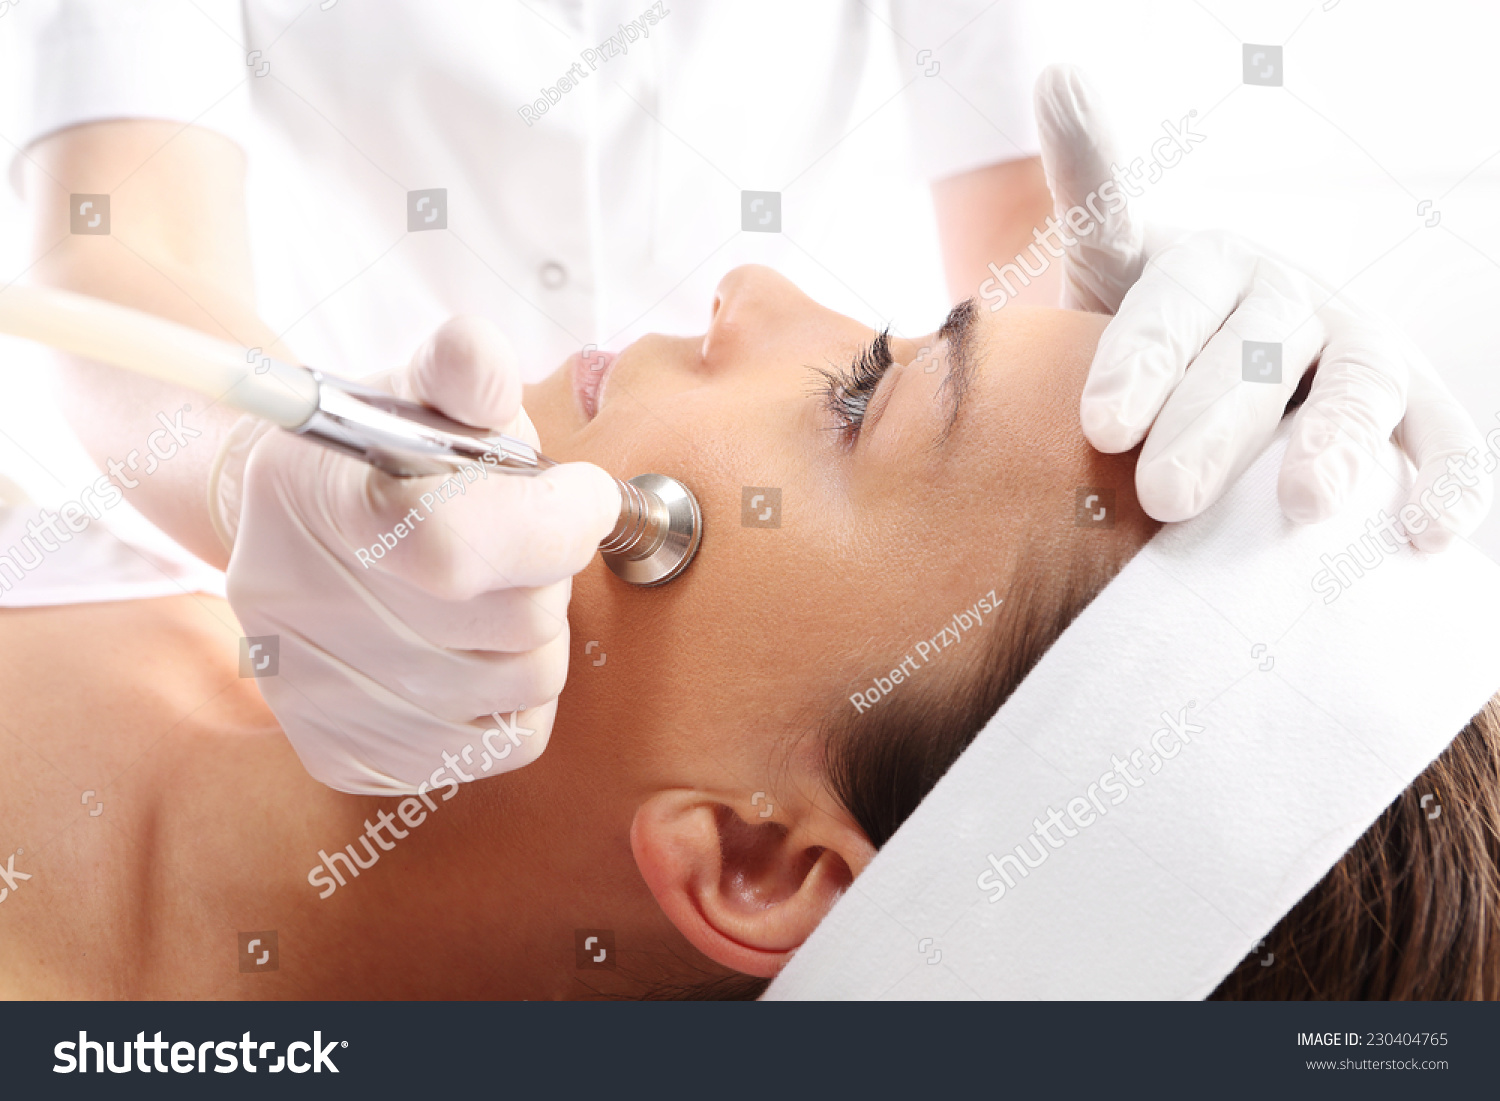 Microdermabrasion relaxed woman during microdermabrasion for A trial beauty treatment salon